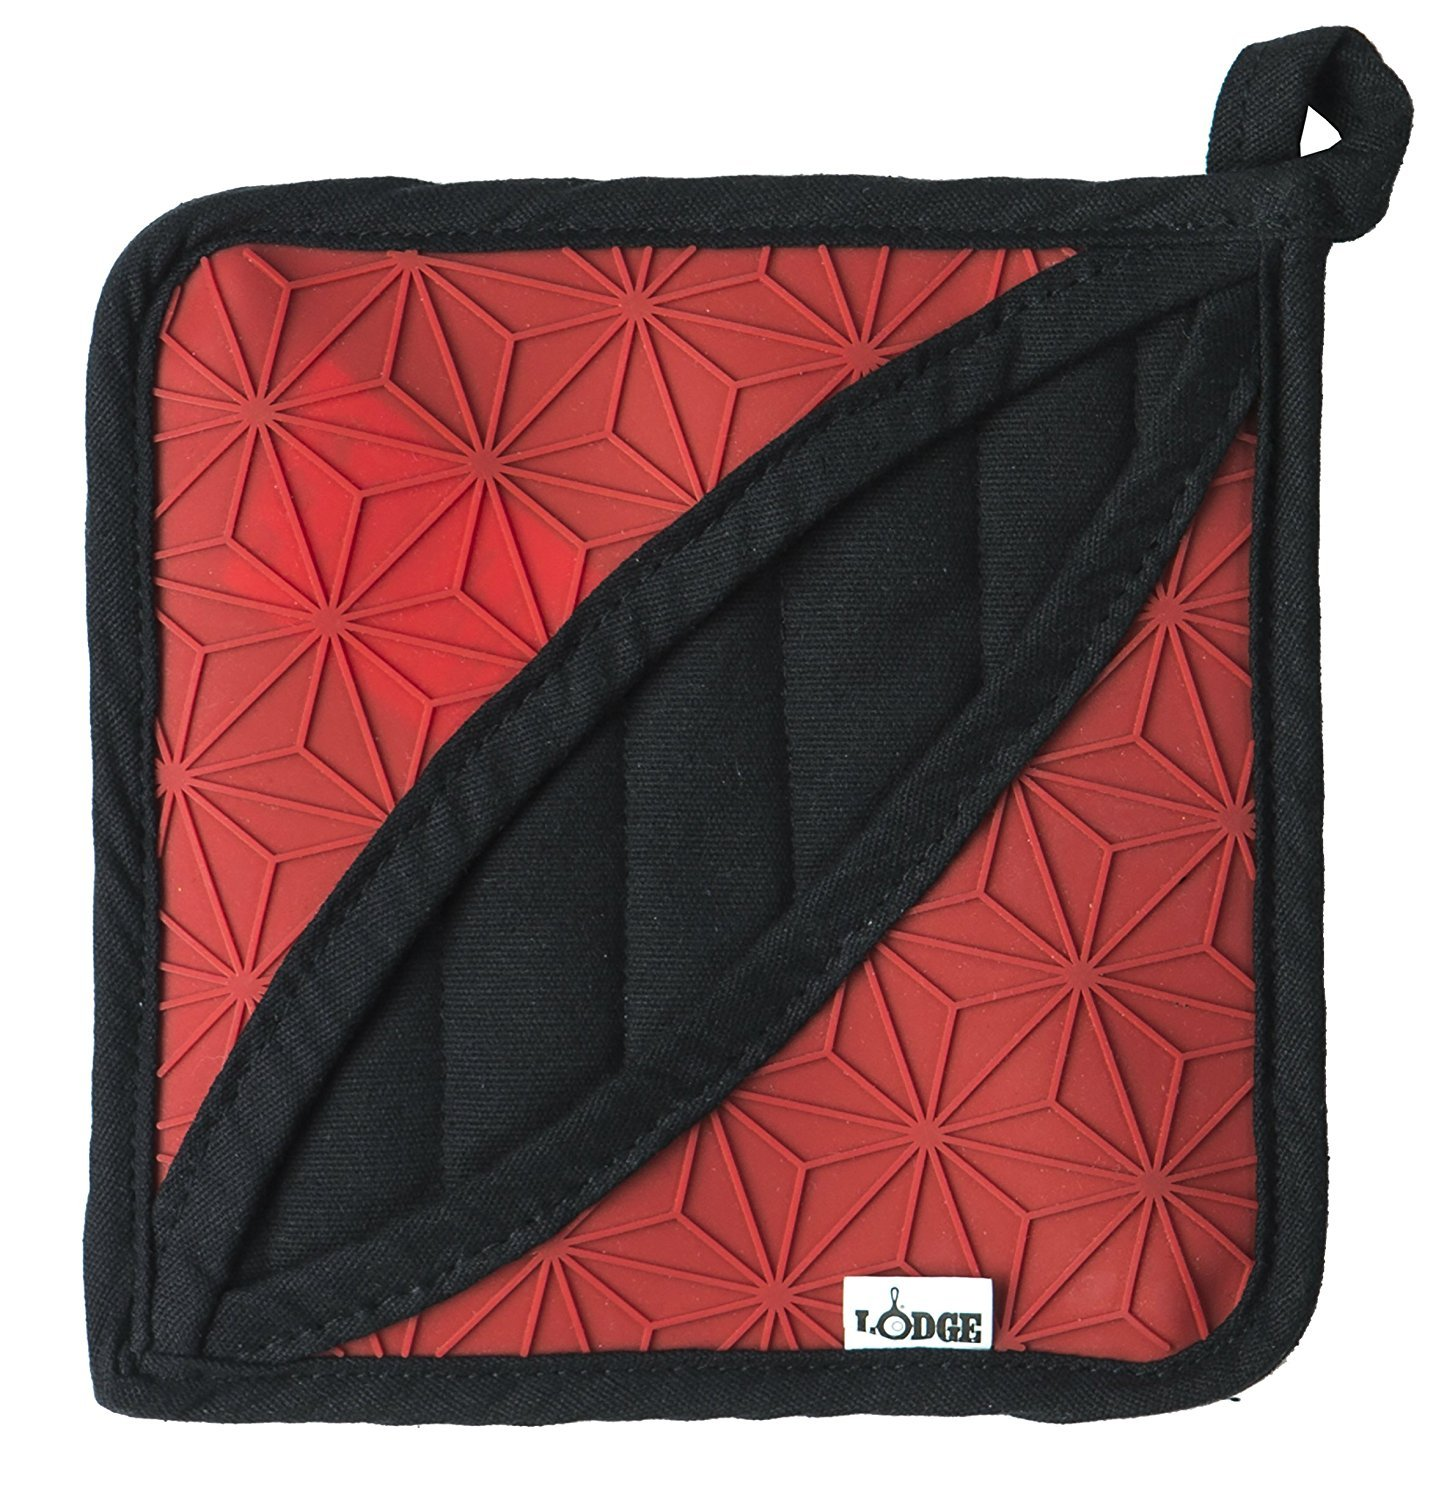 Lodge Silicone and Fabric Pot Holder for Seasoned Cast Iron Cooking (2 Pack) - Dual Purpose Oven Mitt and Trivet with Non-Slip Silicone and Fabric Design